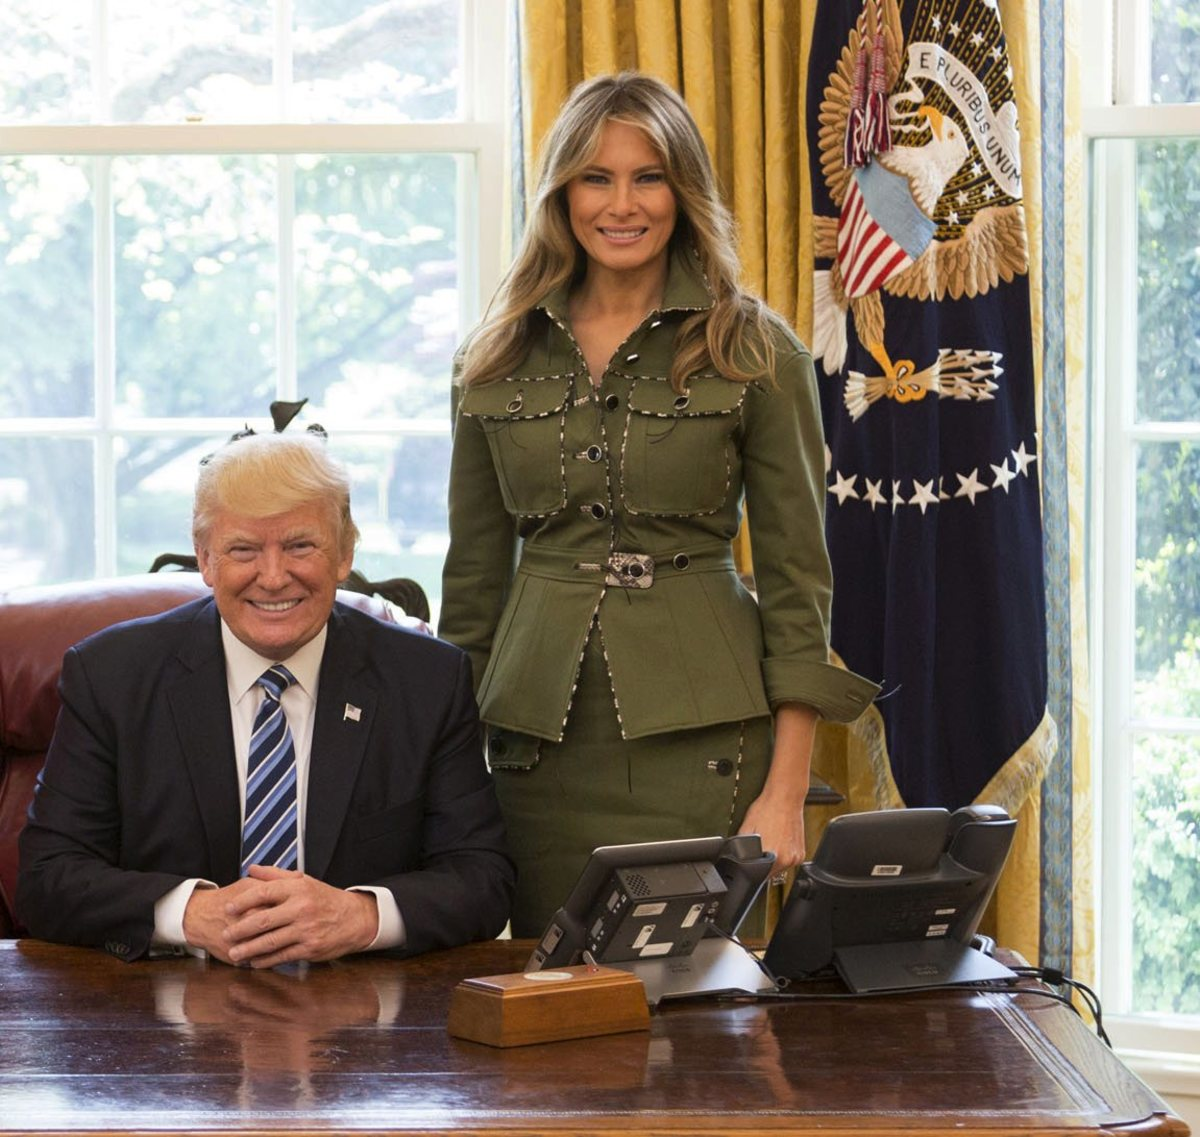 Donald-and-Melania-Trump-in-the-Oval-Office-2017